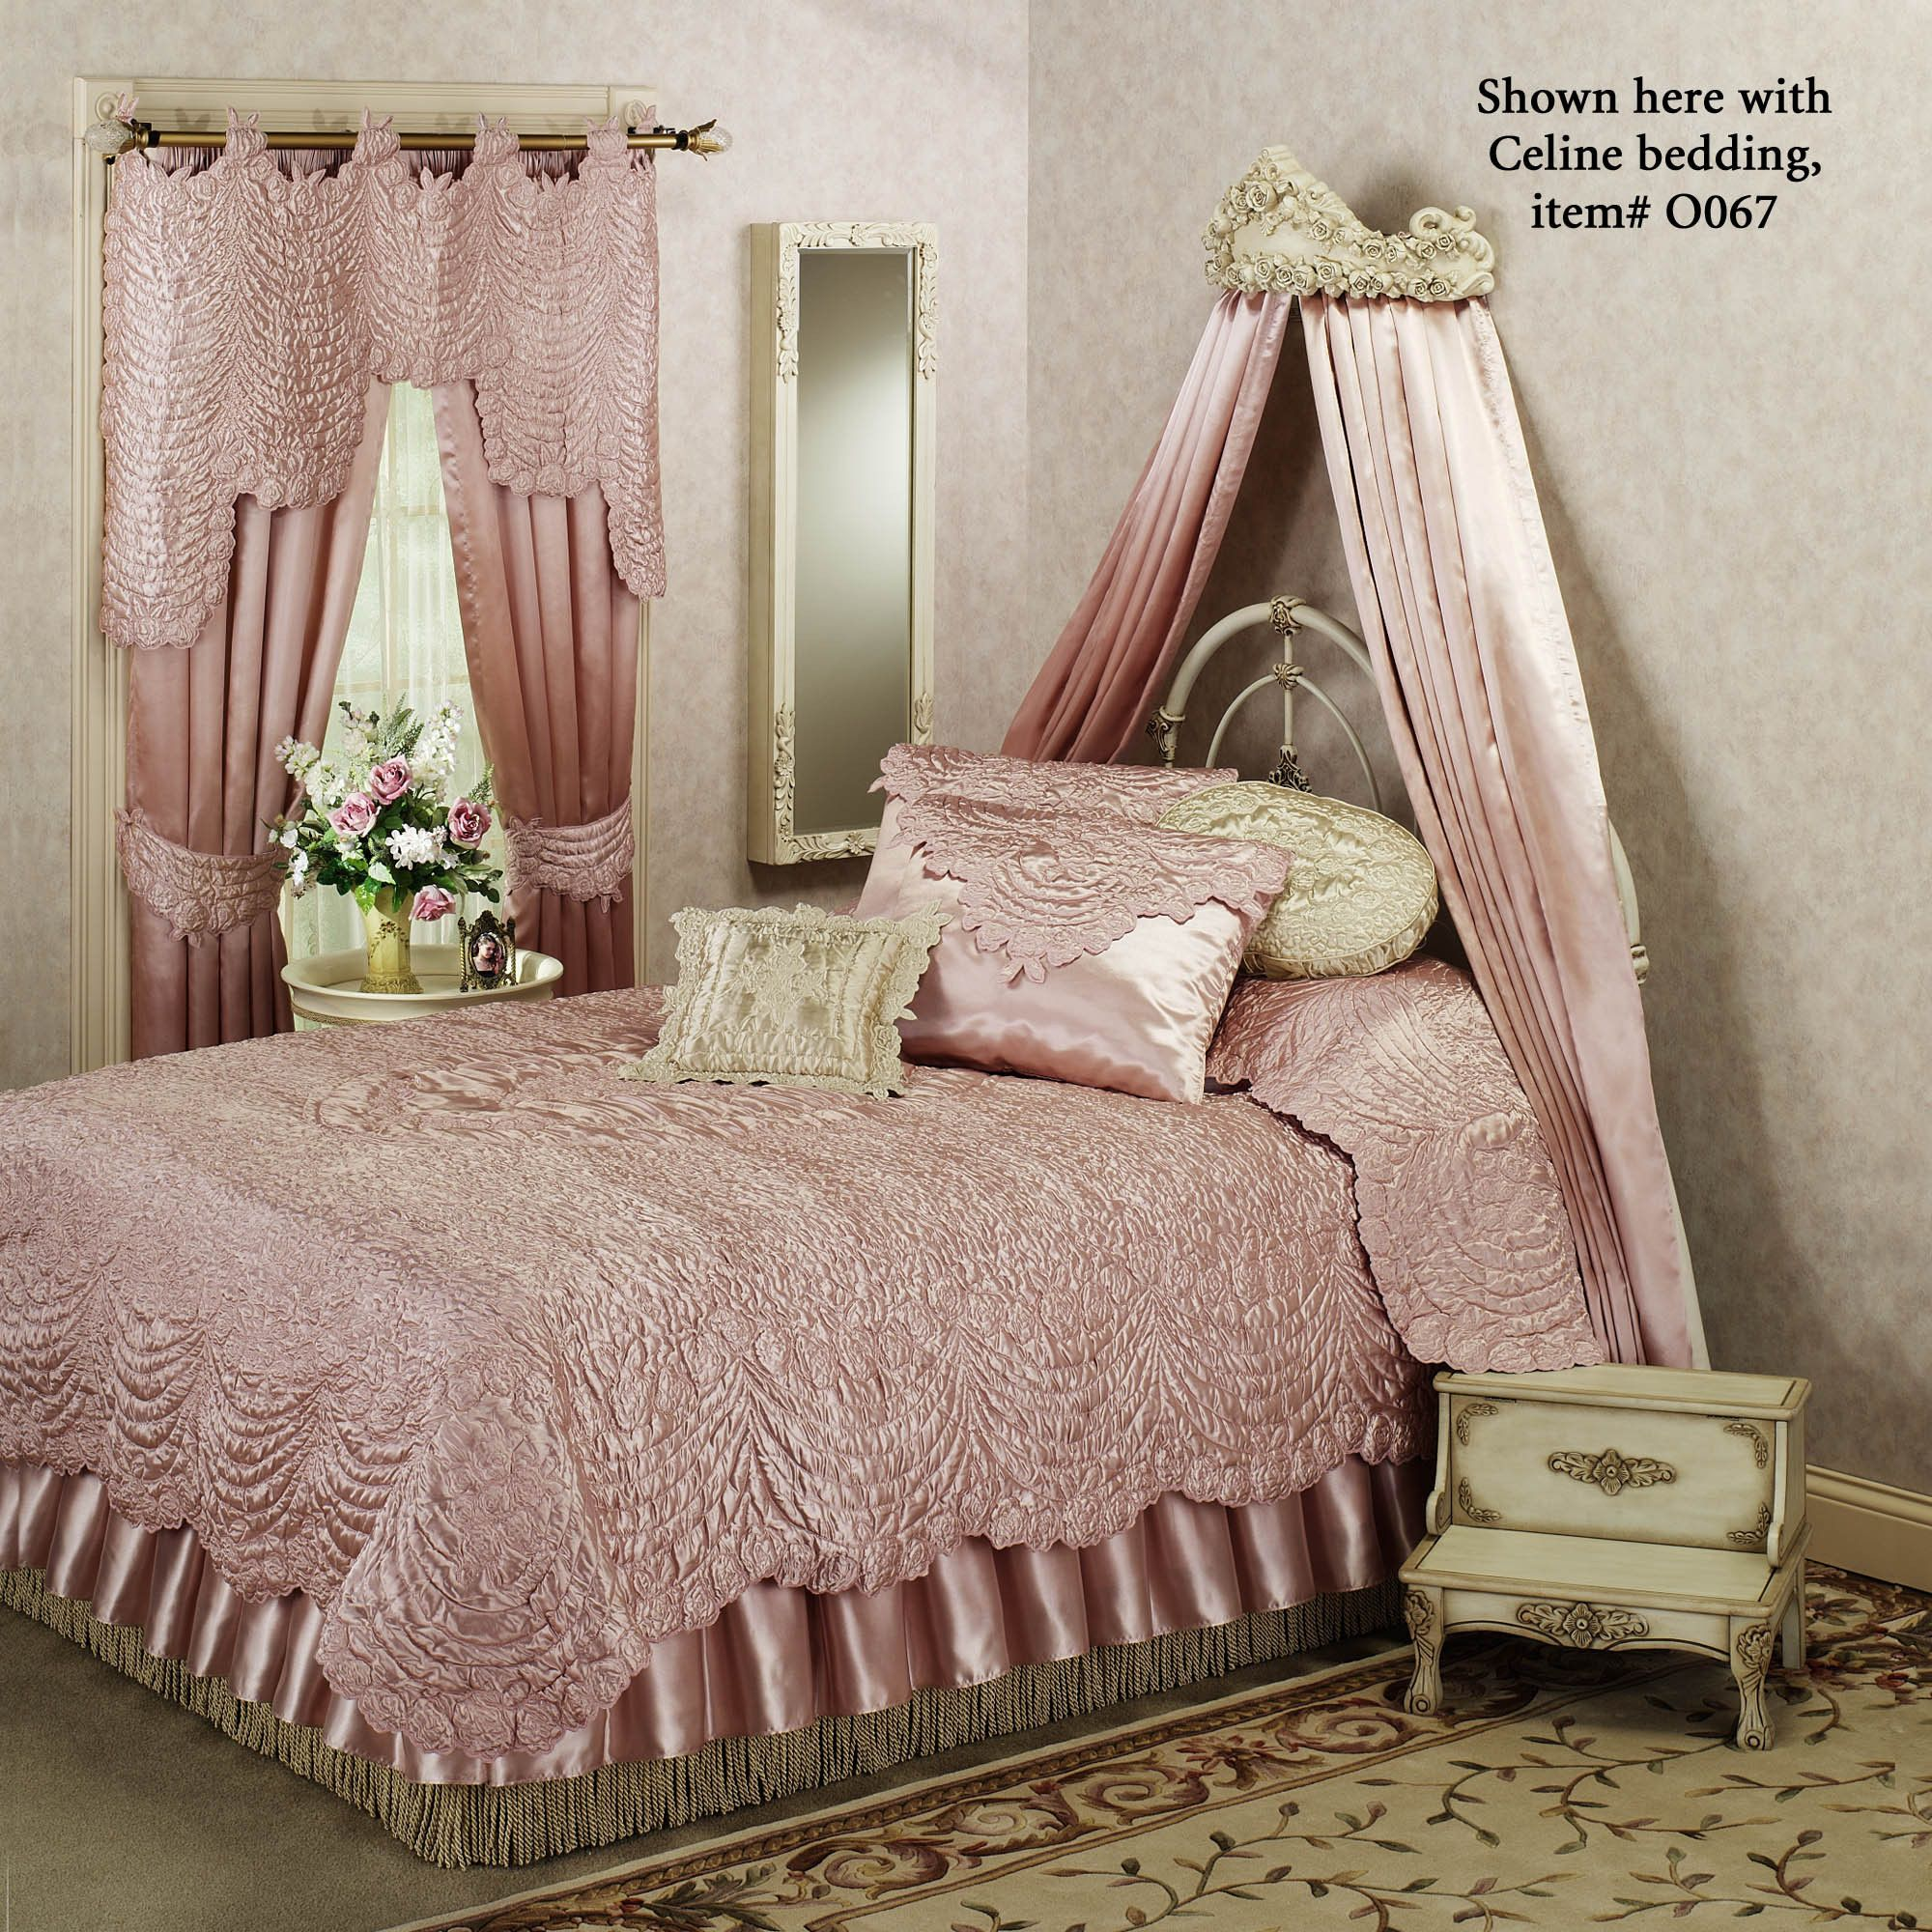 Victoria Rose Antique Ivory Wall Teester Bed Crown | Bed ... on Wall Teester Bed Crown  id=33397